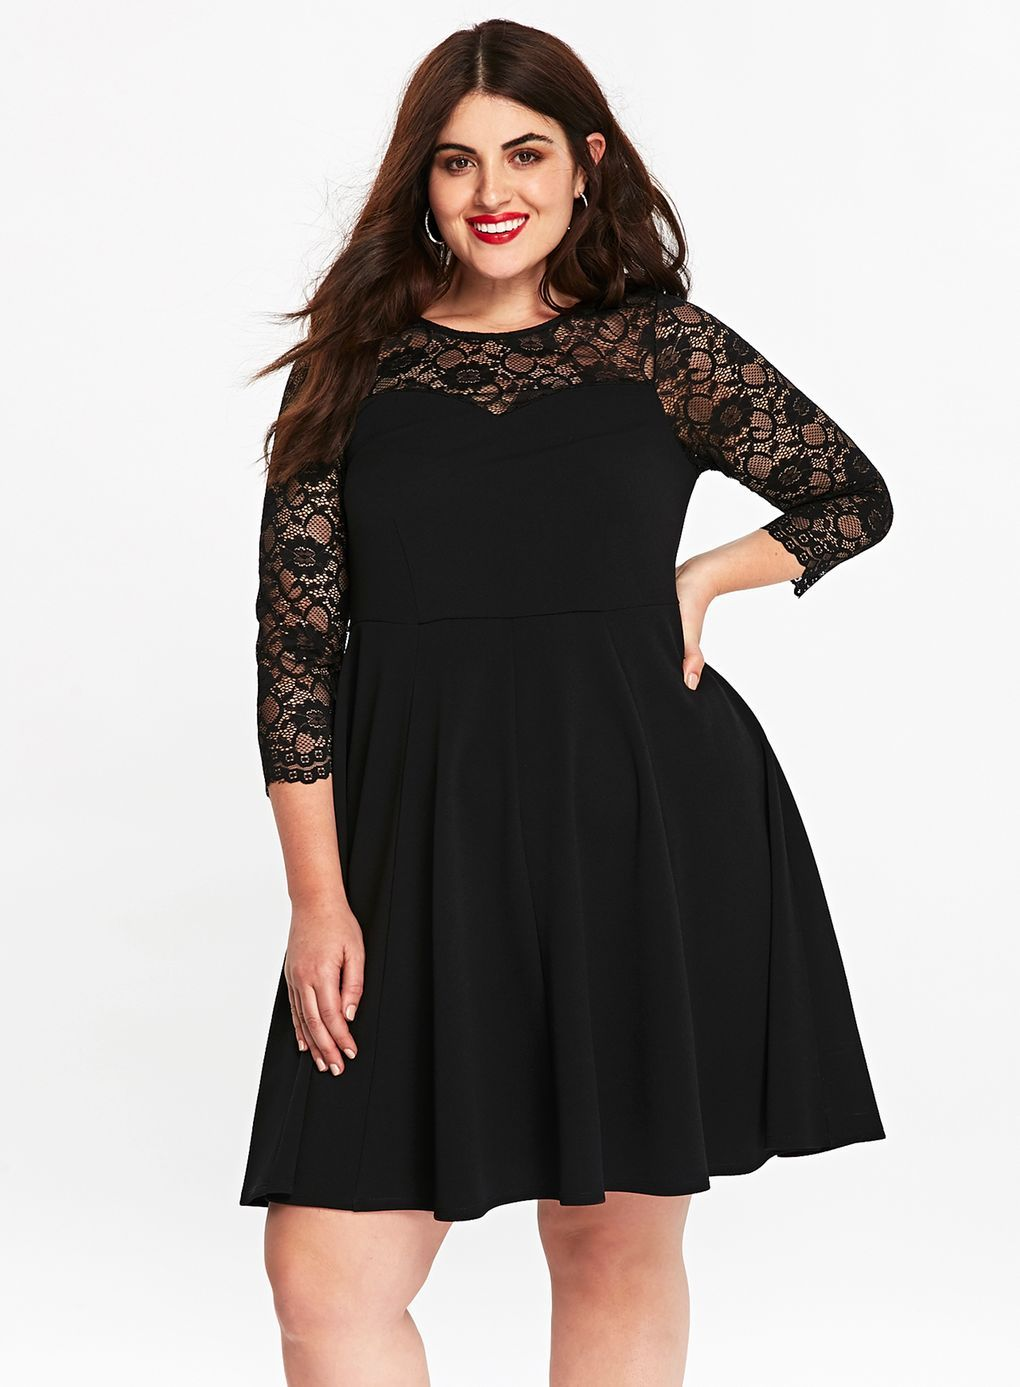 Black lace fit and flare dress dresses fit flare plus